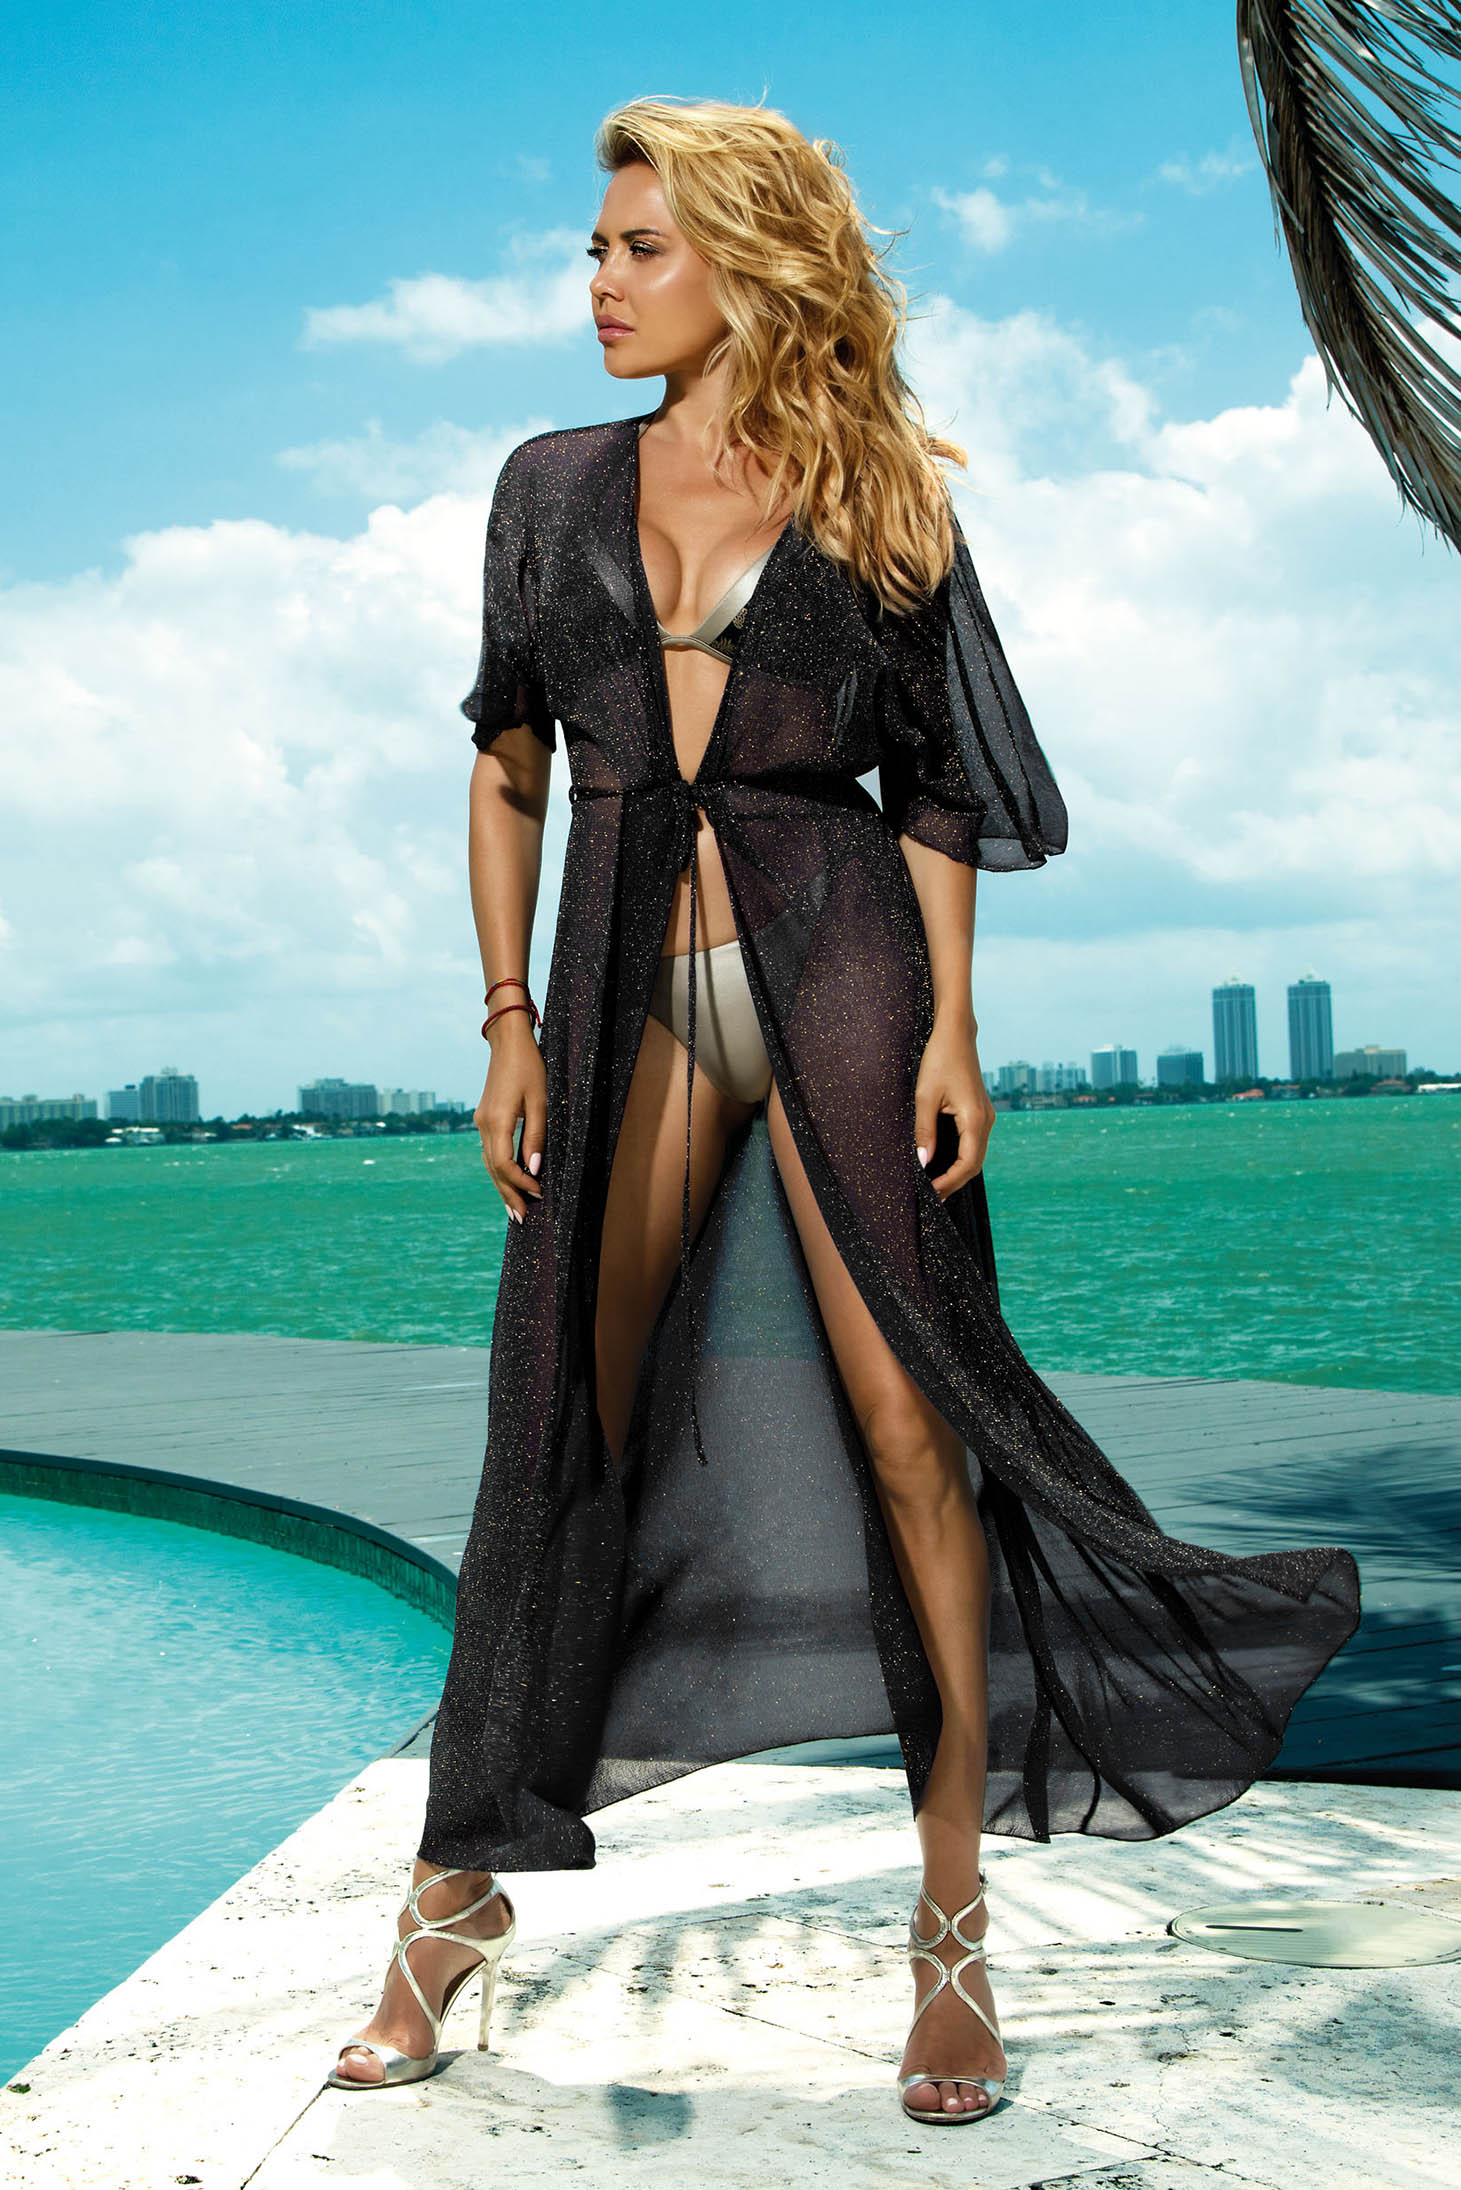 Black long beach wear dress transparent fabric with laced details